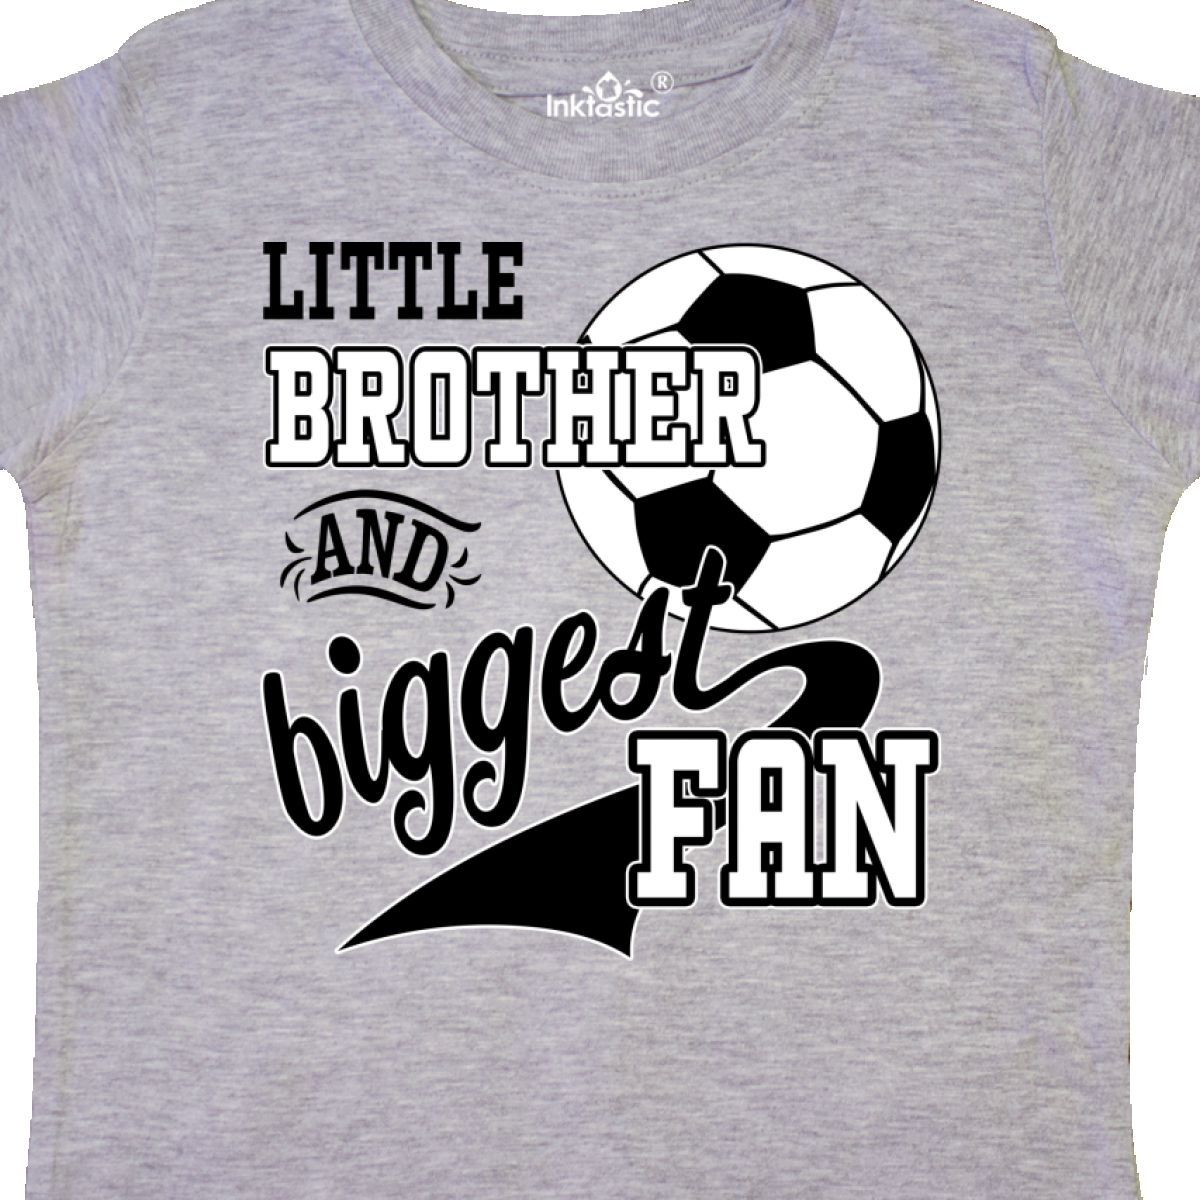 Inktastic-Little-Brother-And-Biggest-Fan-Soccer-Player-Toddler-T-Shirt-Sports thumbnail 4